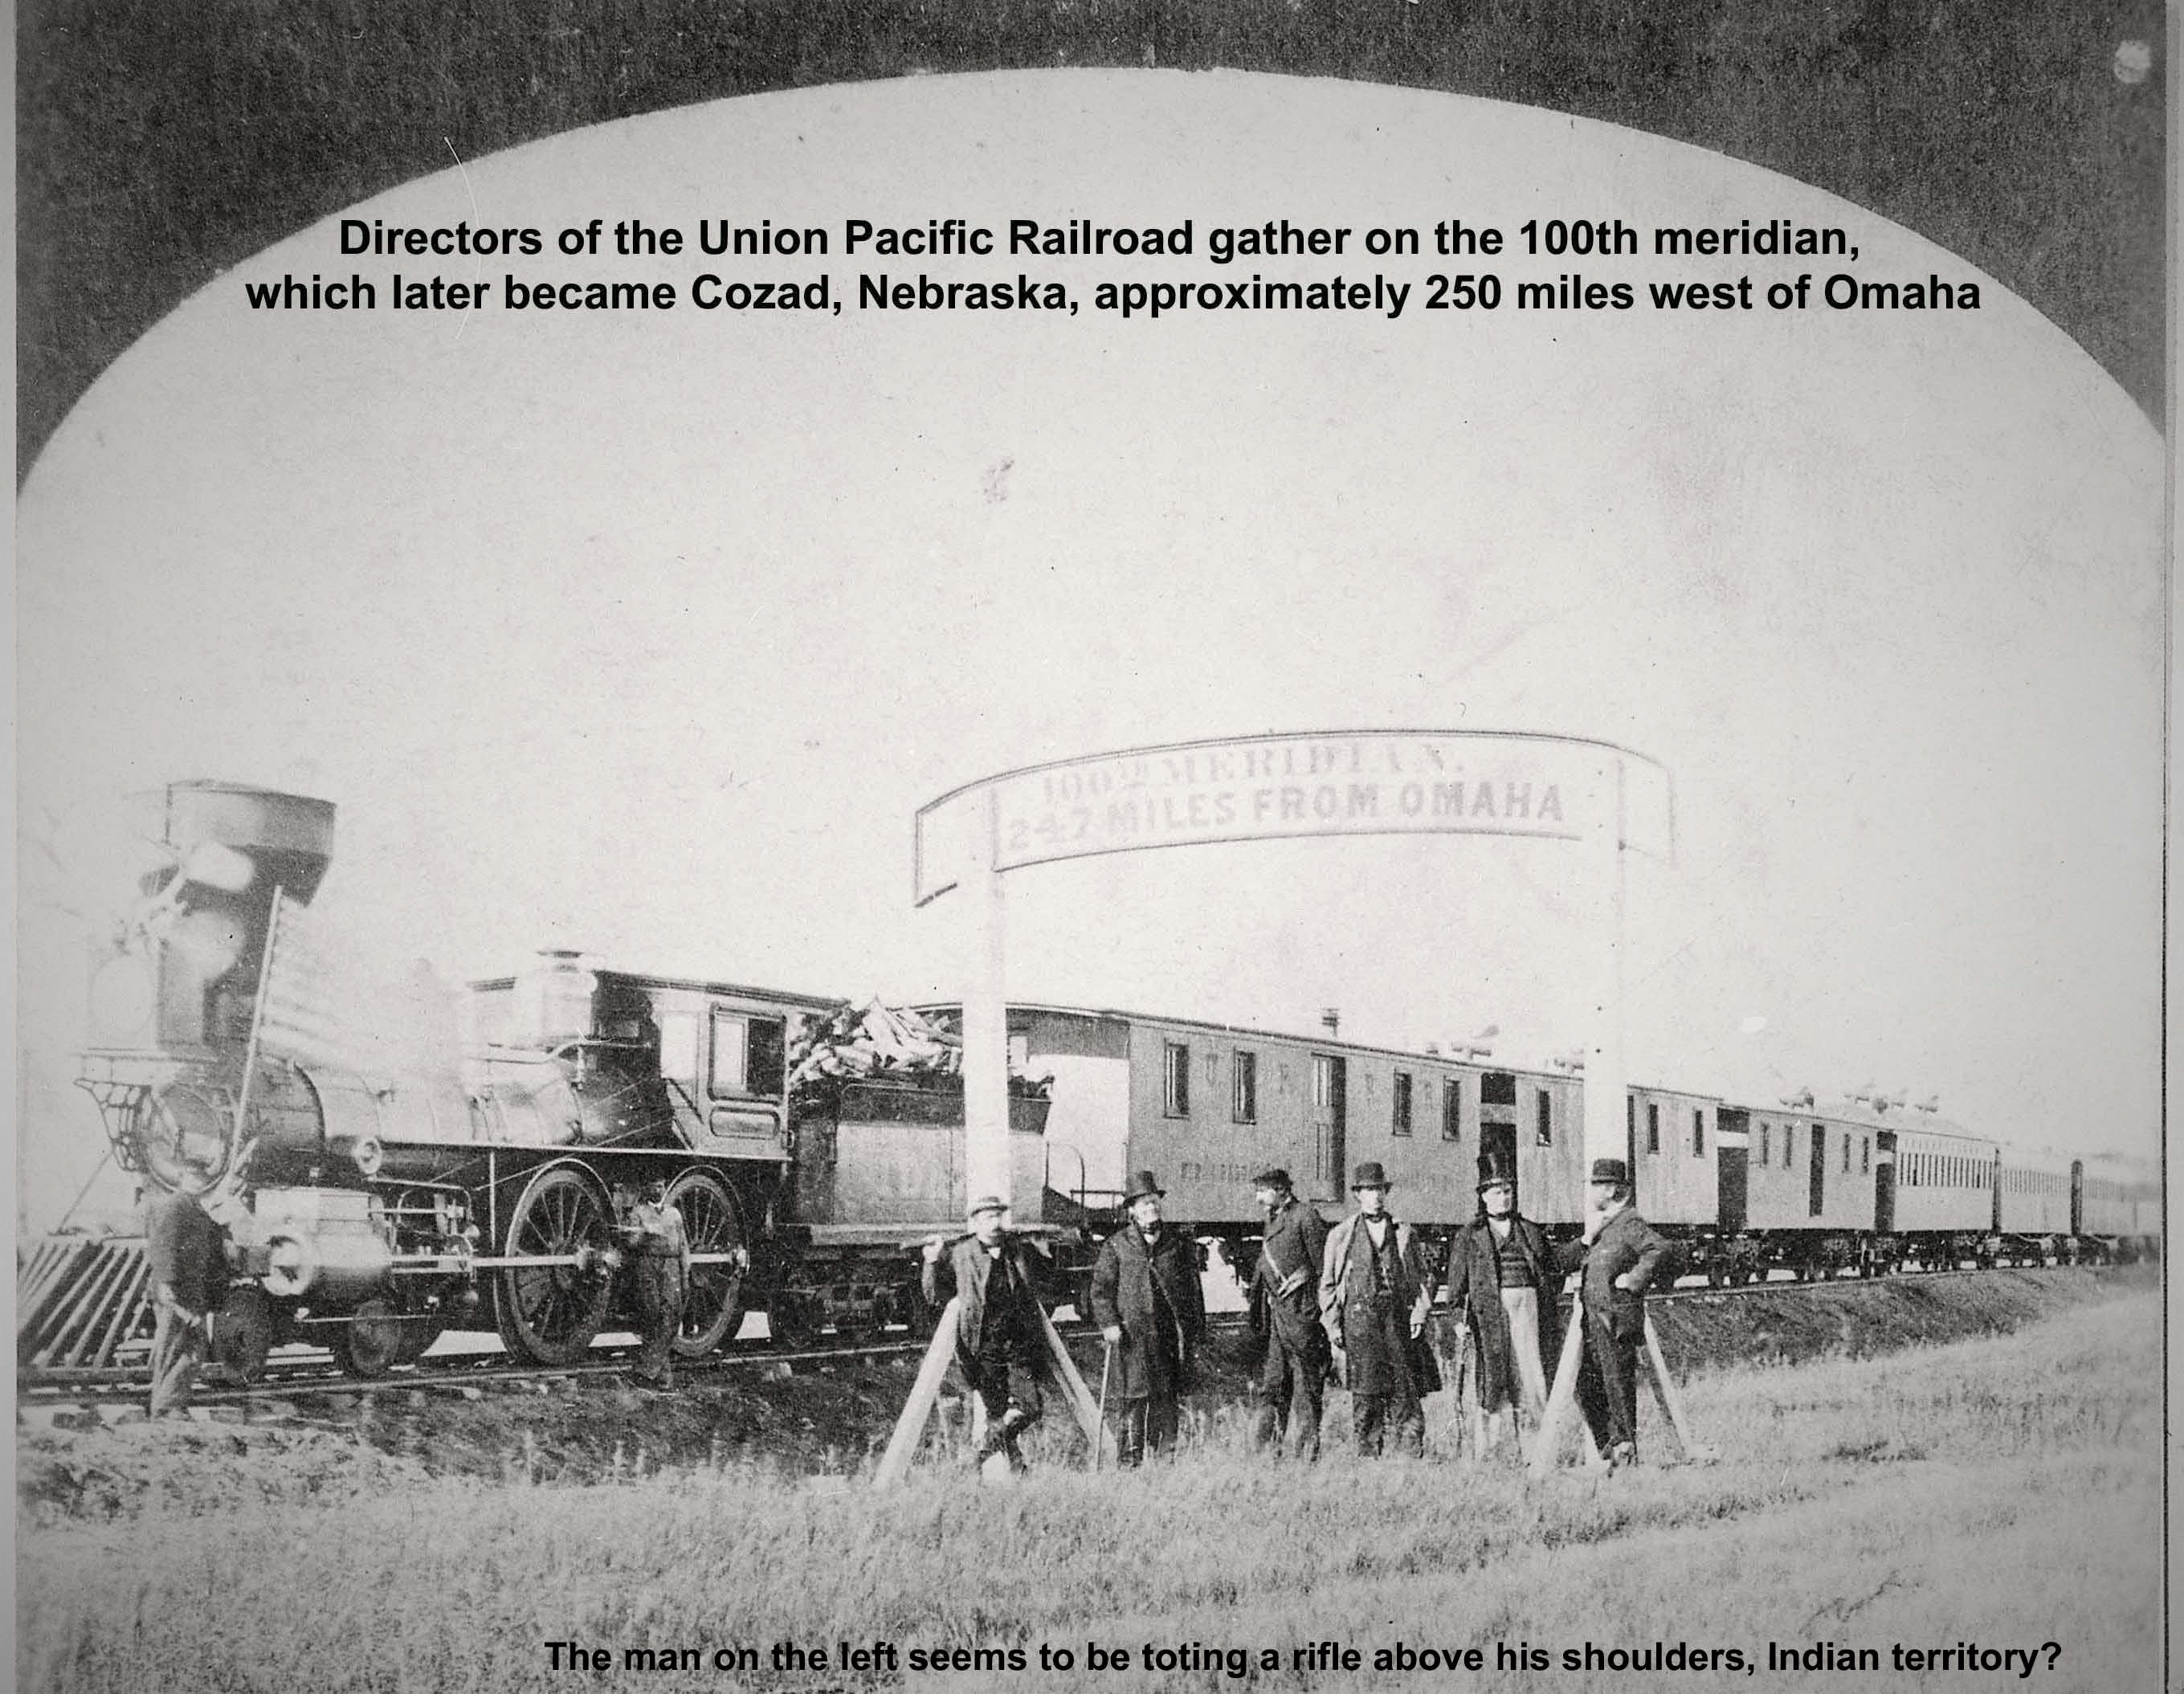 Directors of the Union Pacific Railroad gather on the 100th meridian, which later became Cozad, Nebraska